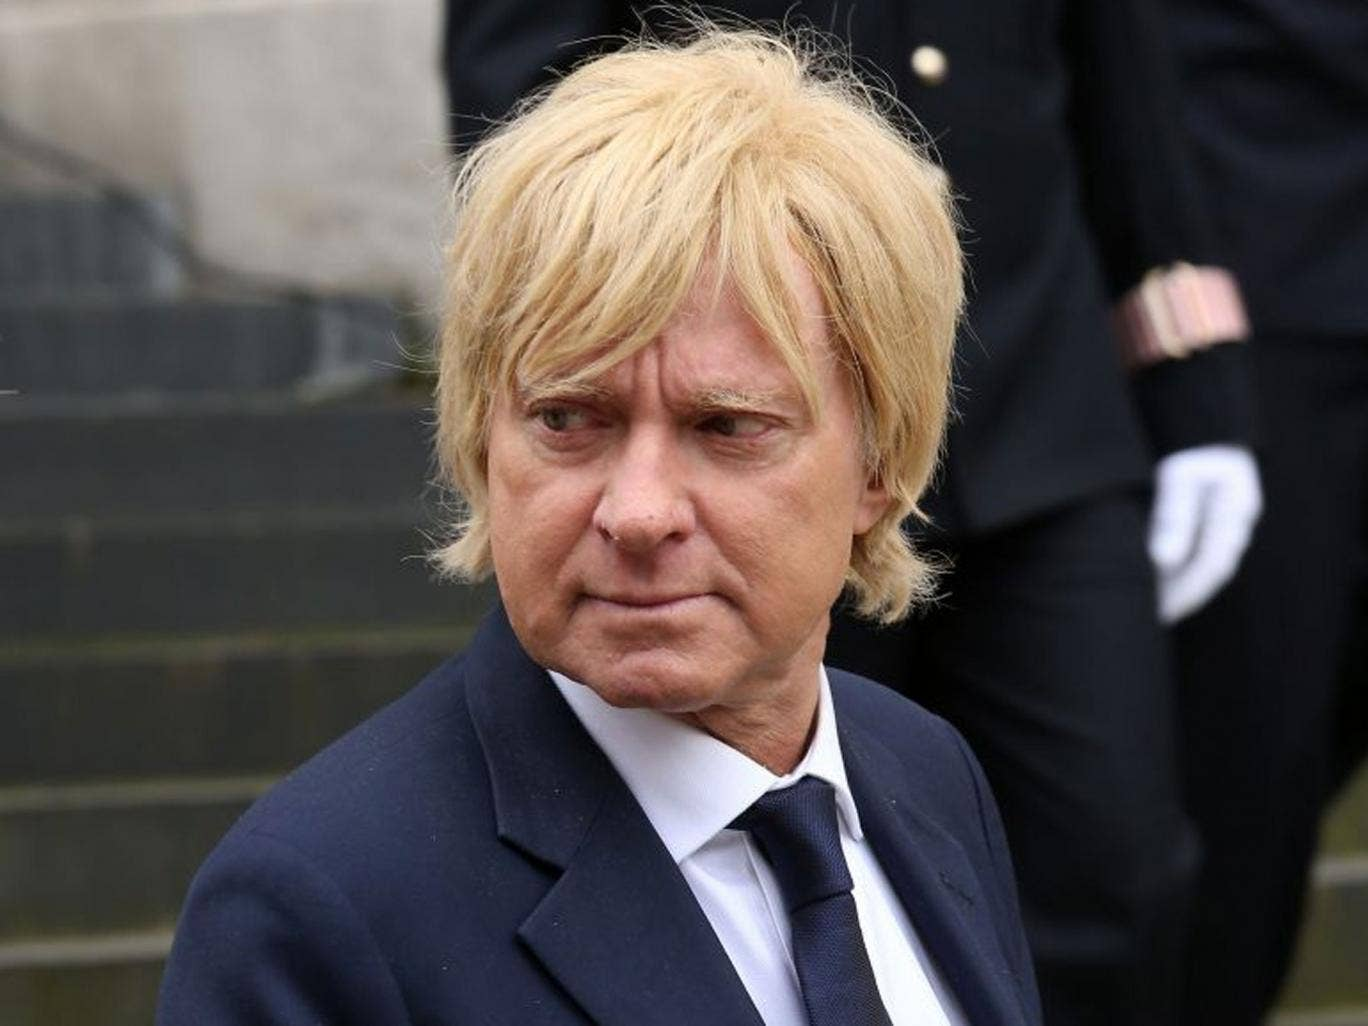 (FILE PHOTO) FILE - Conservative MP Michael Fabricant Apologies For 'Punch Journalist' Joke Tweeter Remark. LONDON, ENGLAND - APRIL 17:  MP Michael Fabricant attends the Ceremonial funeral of former British Prime Minister Baroness Thatcher at St Paul's Ca